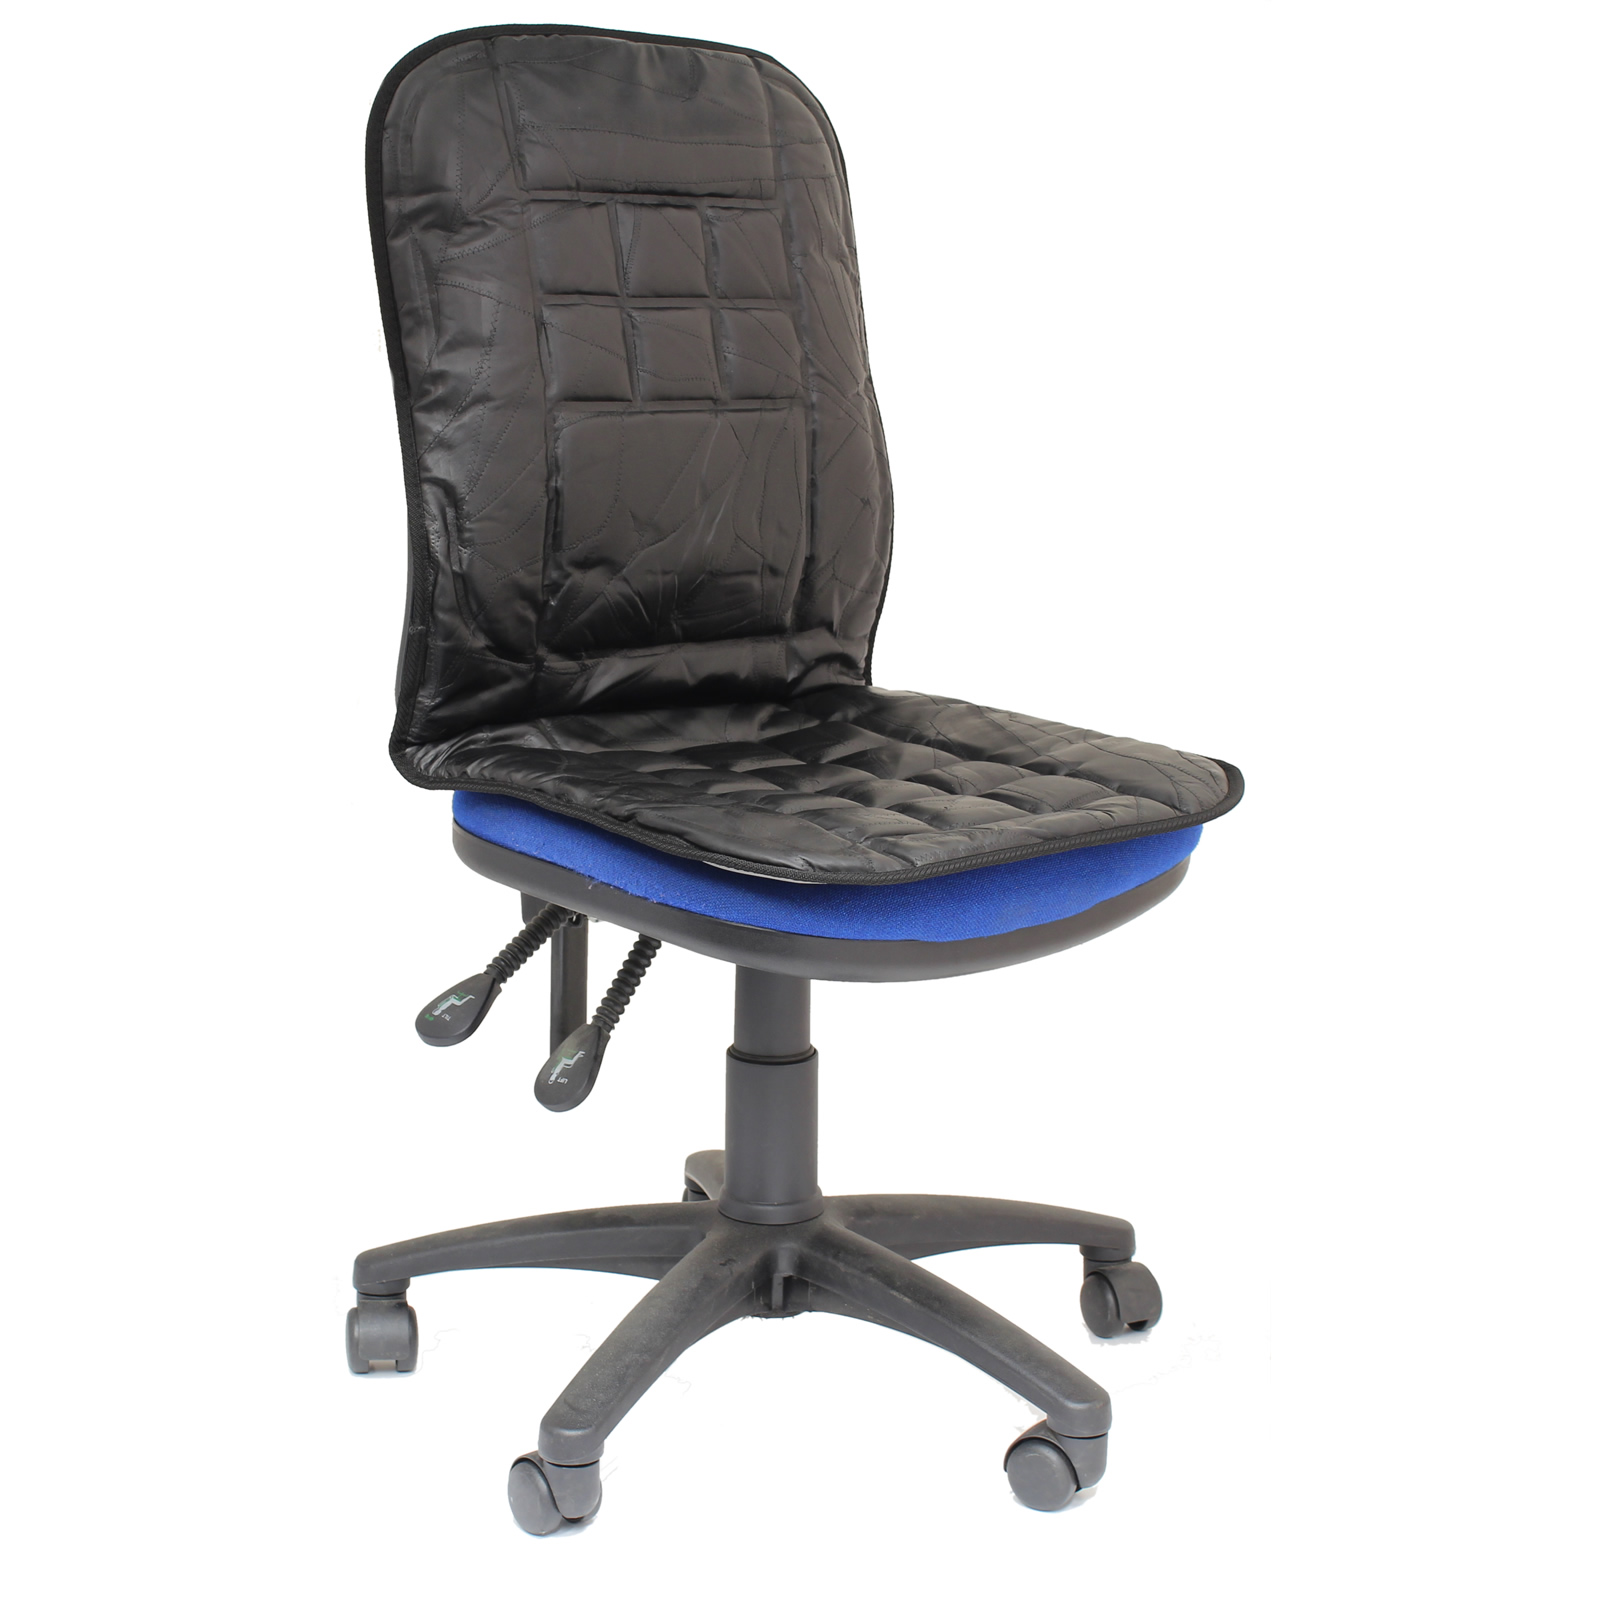 ORTHOPAEDIC LEATHER DESK OFFICE CHAIR BACK SEAT CUSHION LUMBAR SUPPORT